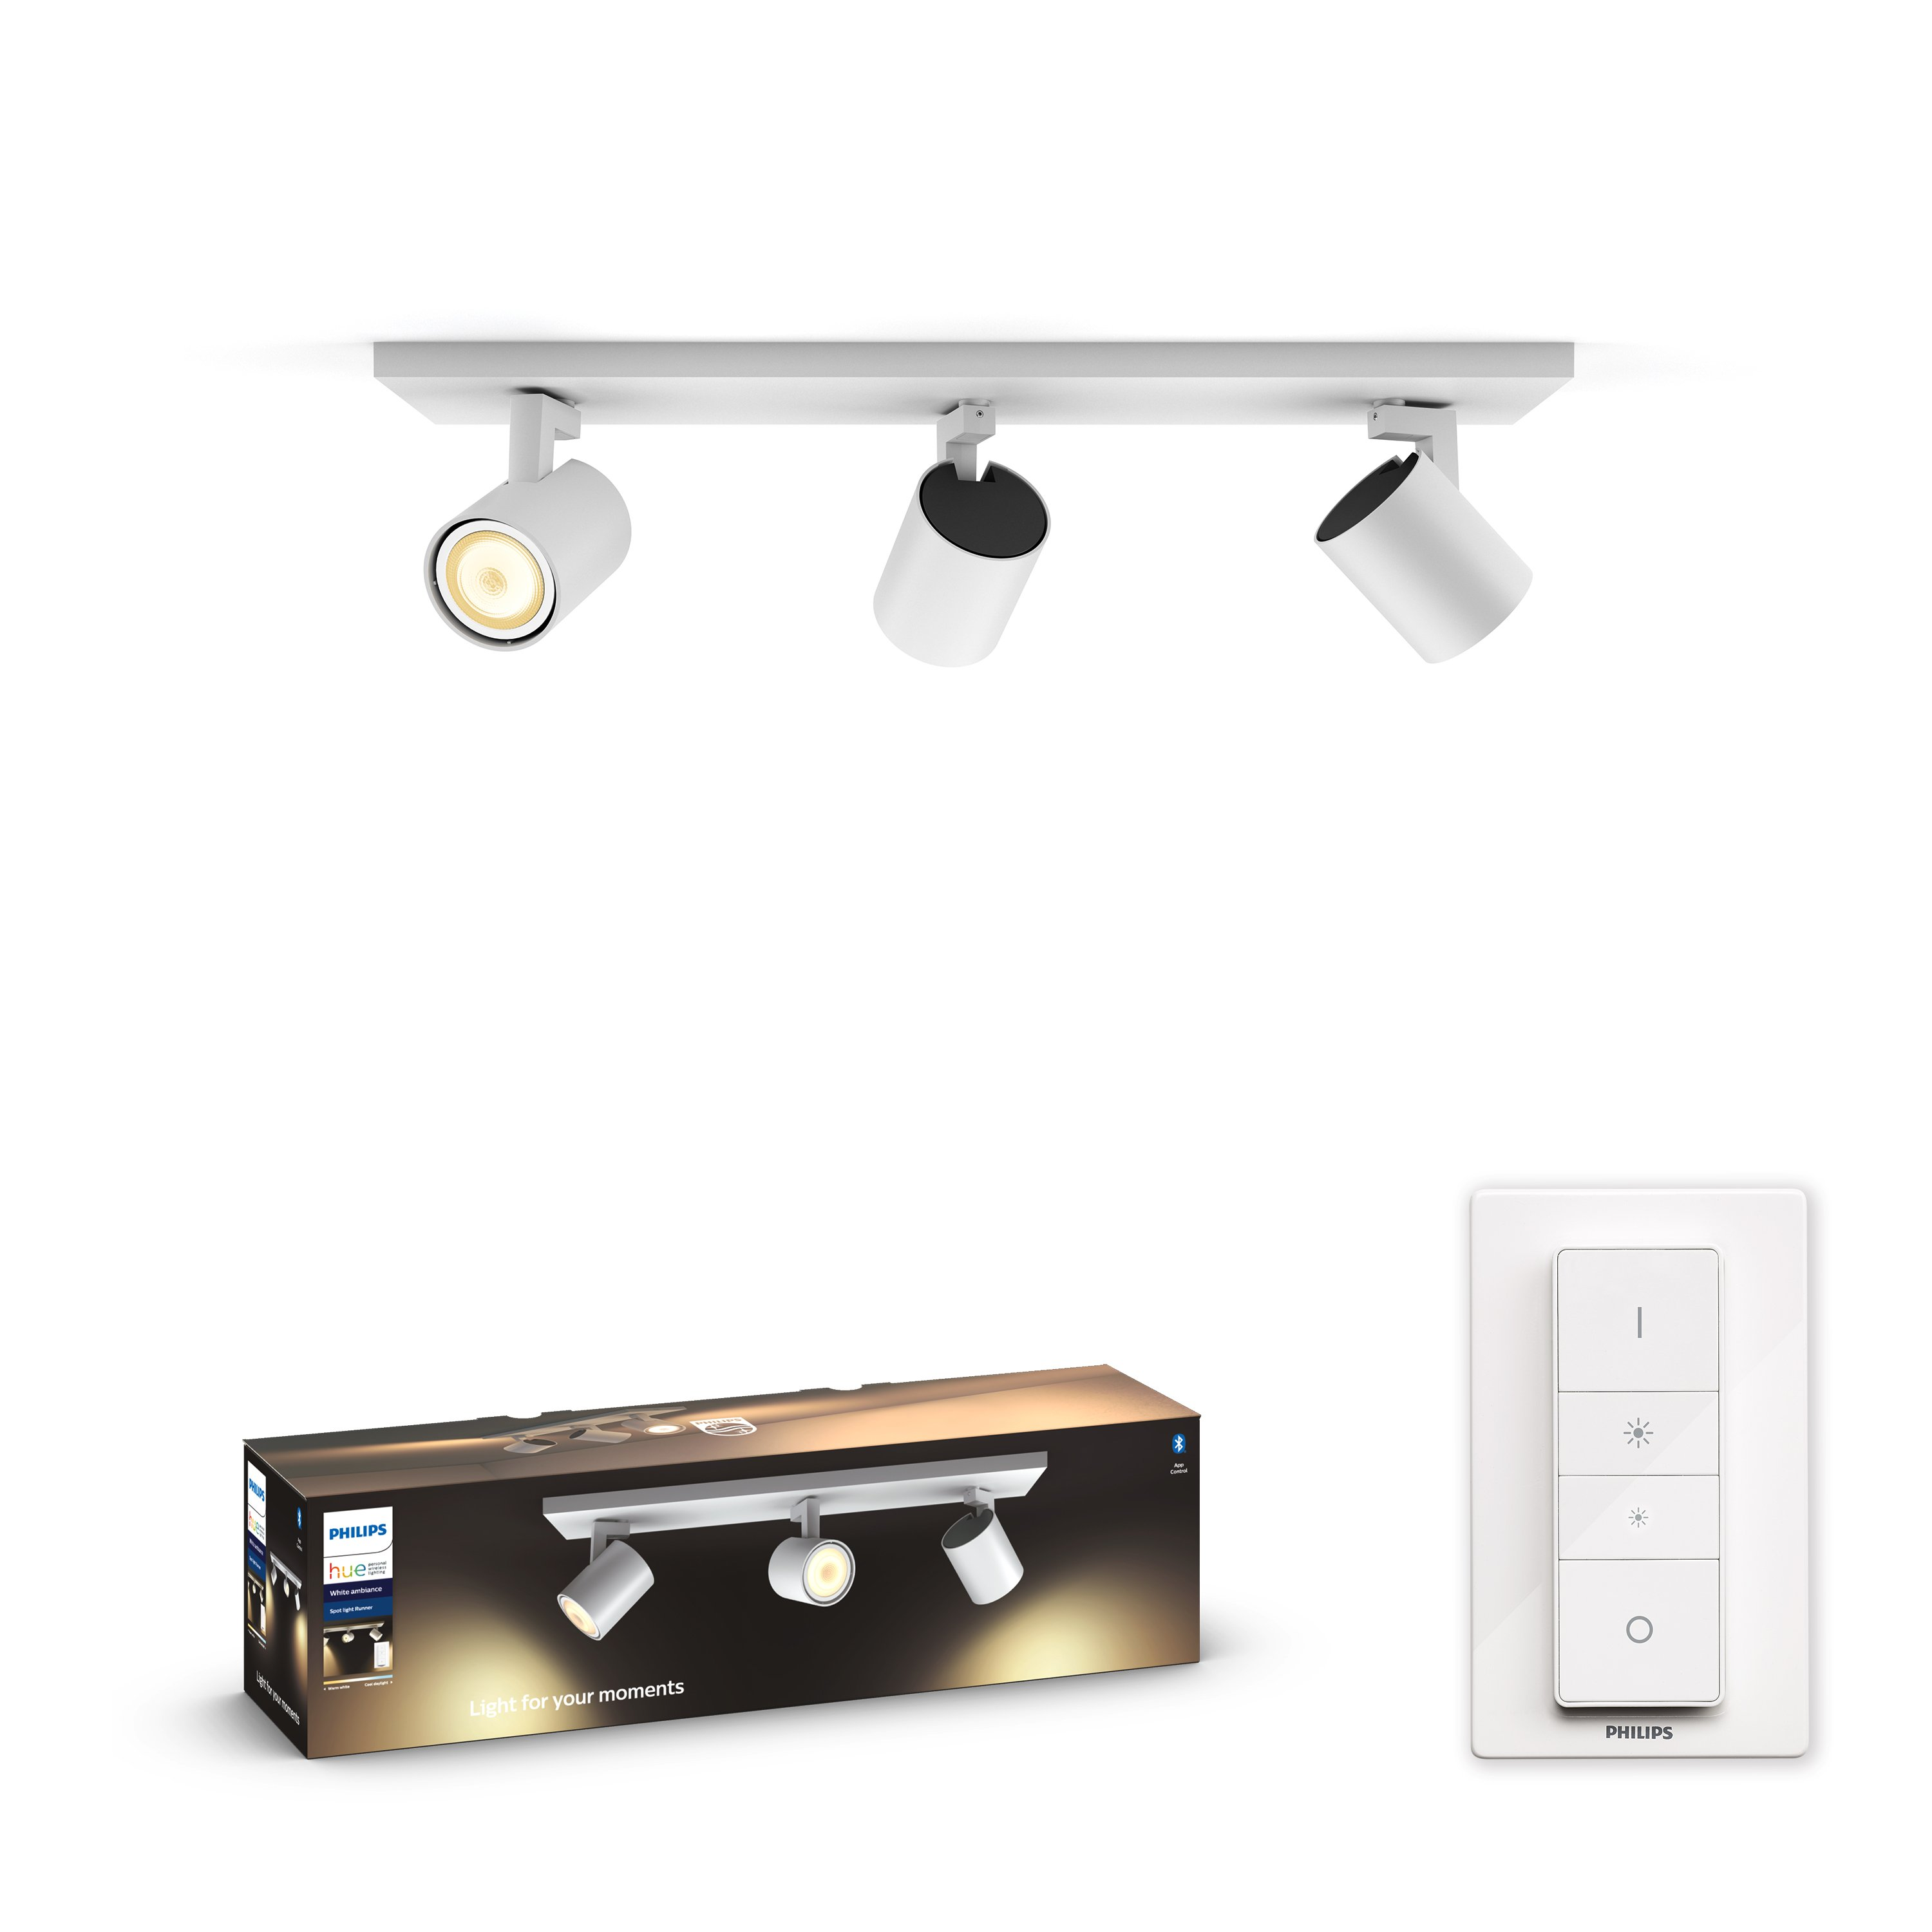 Philips Hue - Connected Runner 3-Spot Light - White Ambience - Bluetooth